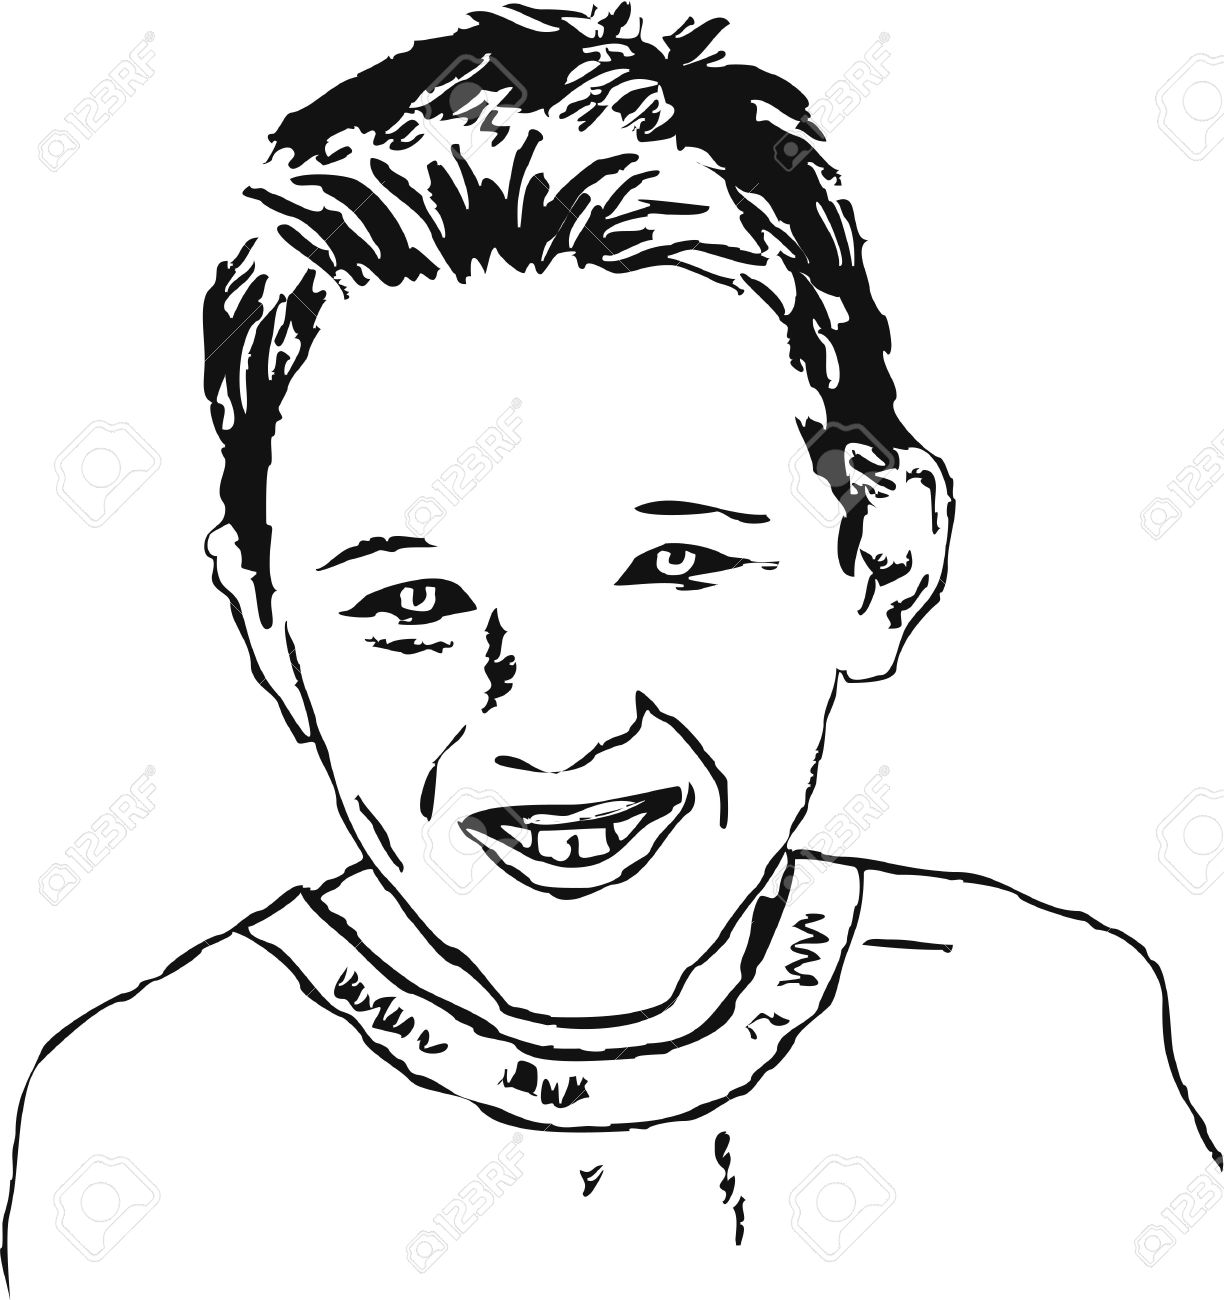 1224x1300 Rough Sketchy Drawing Style Illustration Of A Young Boy